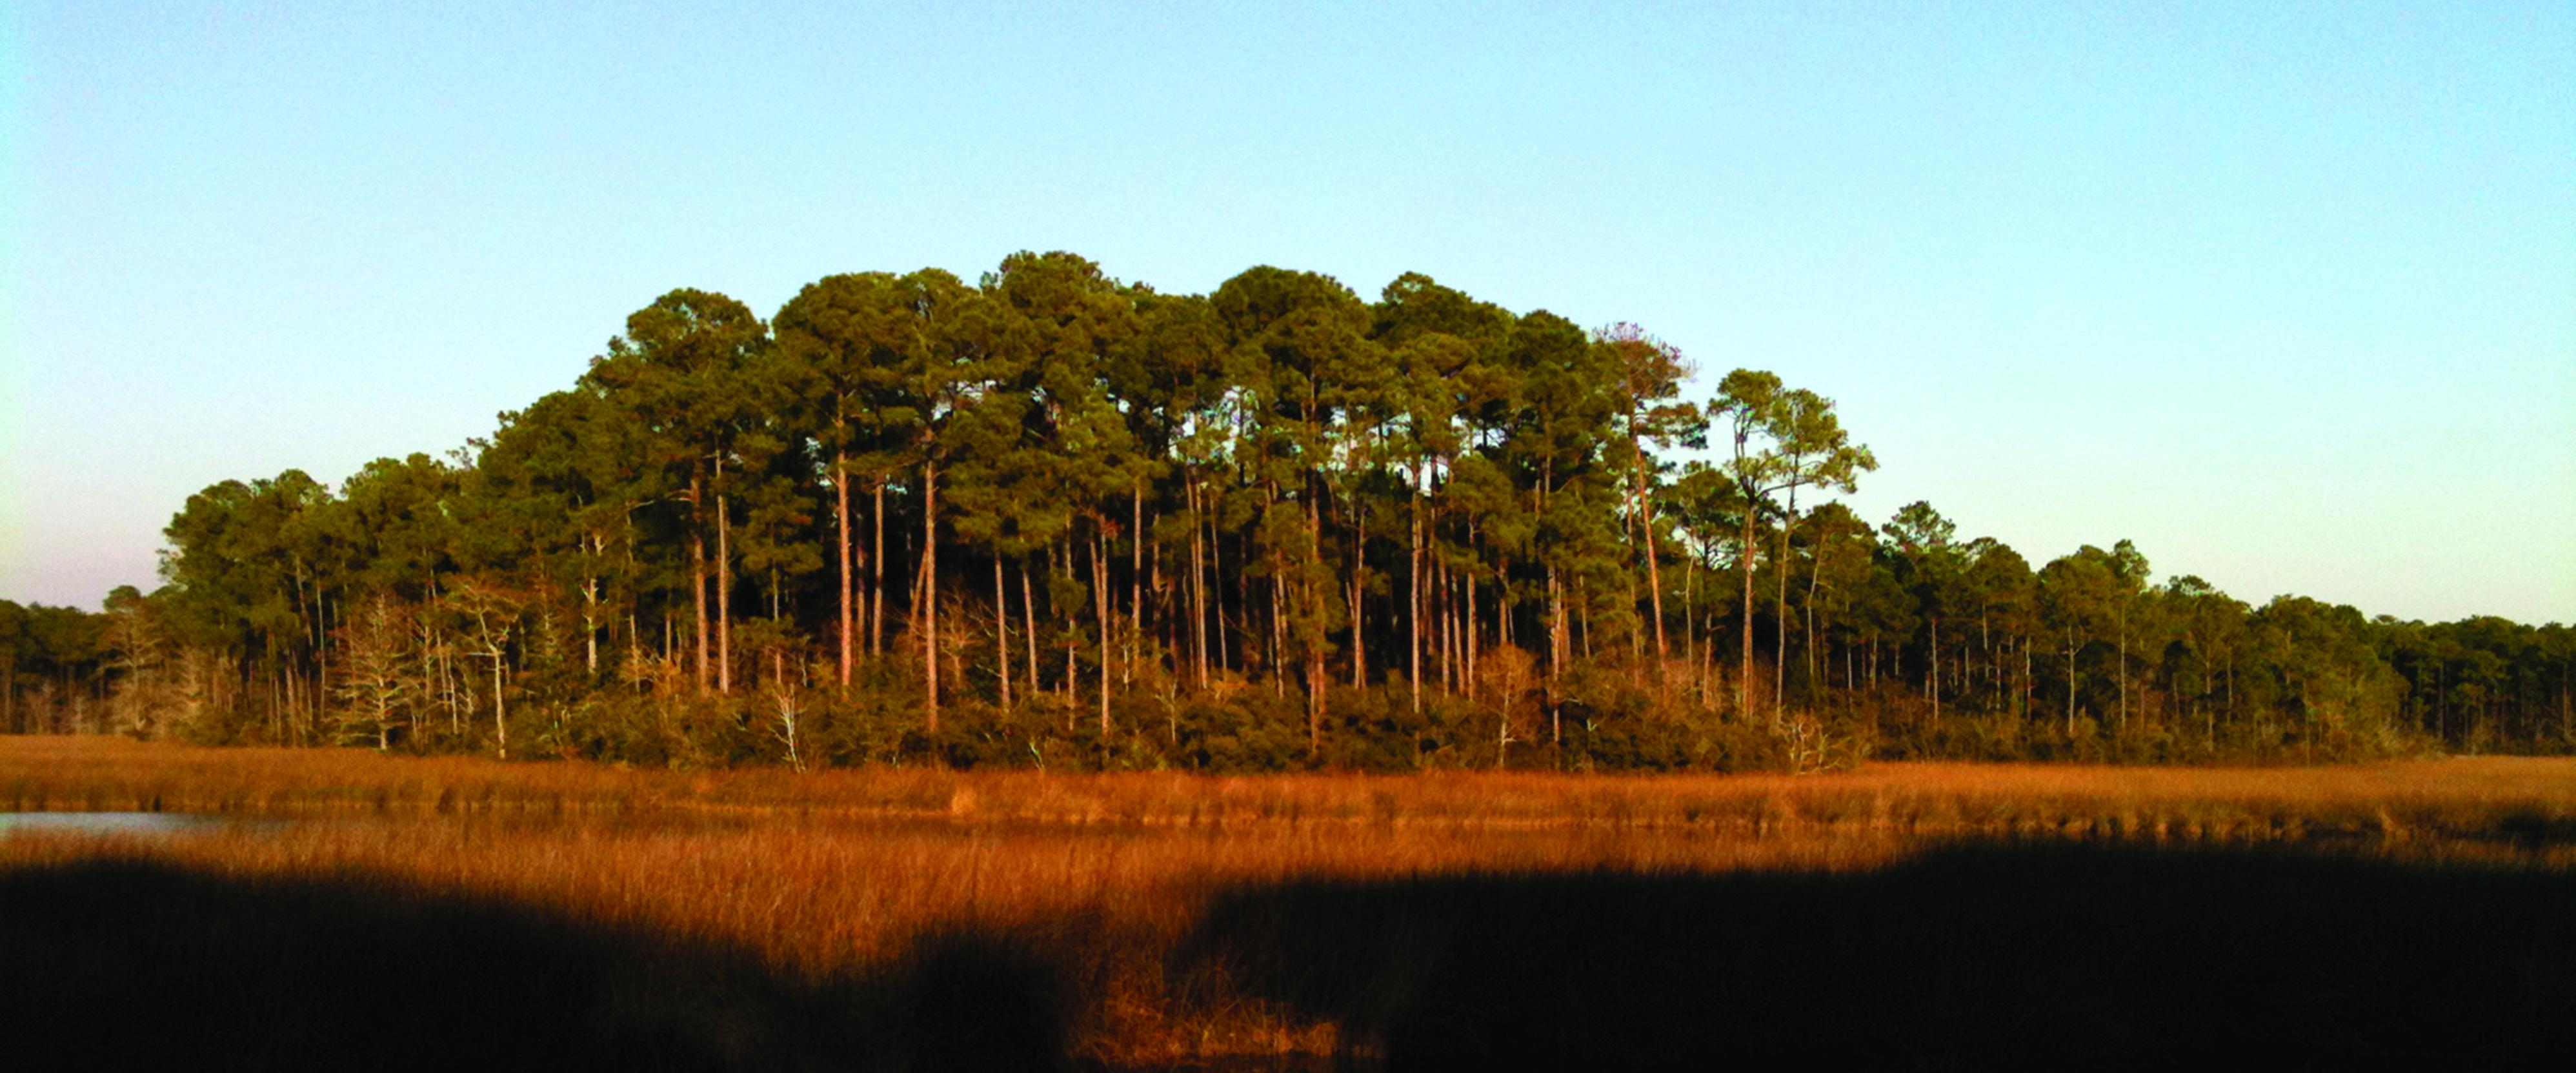 Mississippi Trustee Implementation Group Releases First Draft Restoration Plan